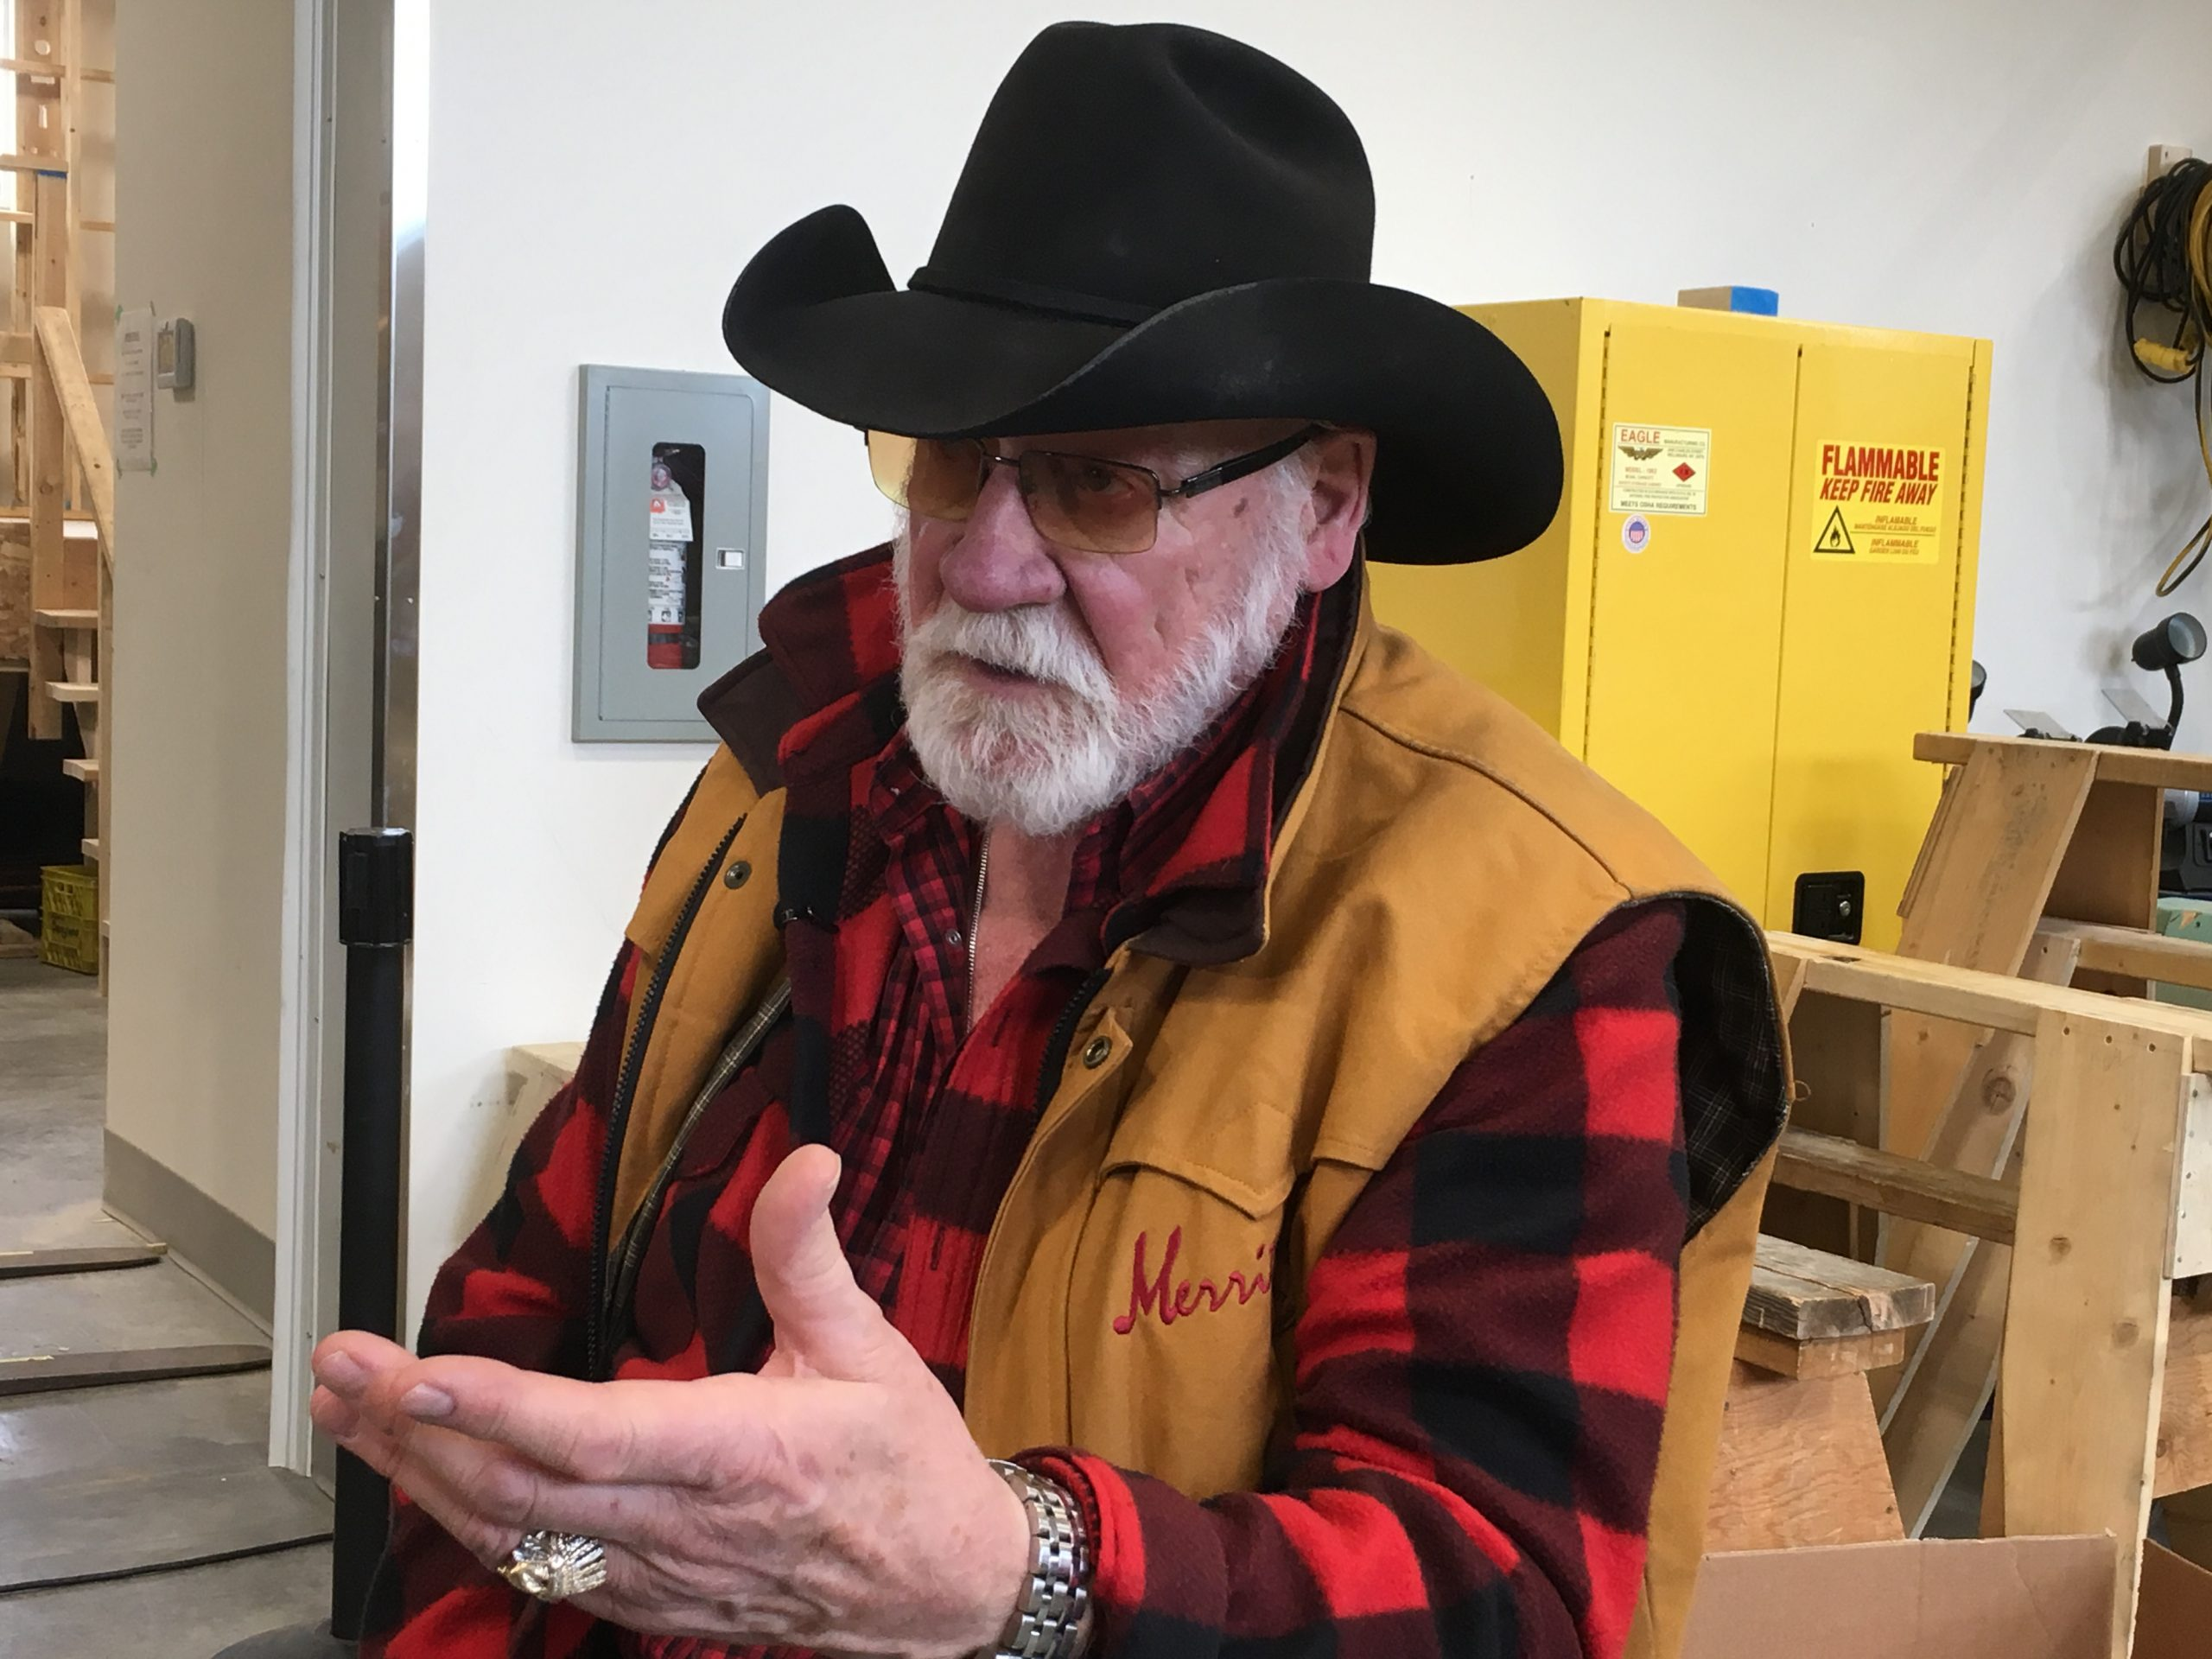 Merritt Mayor says there could be additional forestry jobs for the area